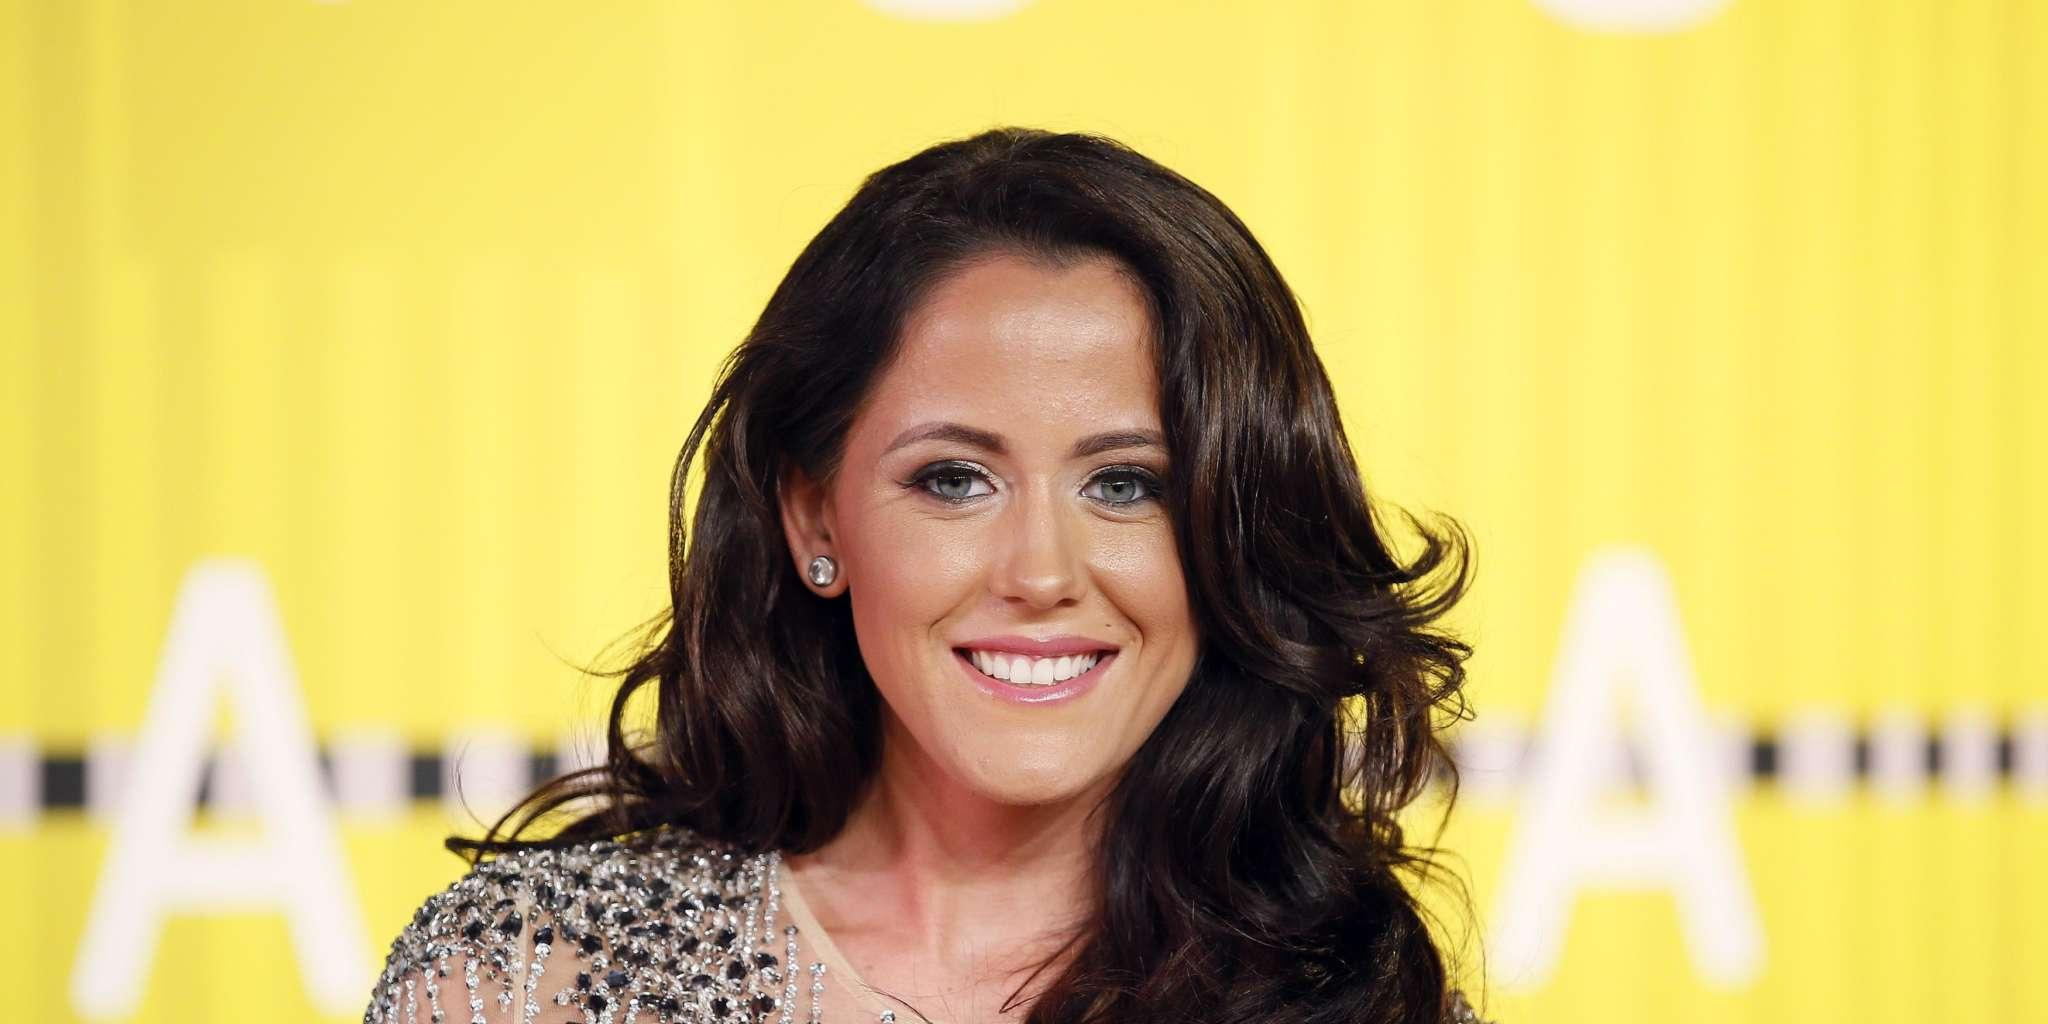 Jenelle Evans Admits She's 'Been In Talks With People' About Her Teen Mom Return Amid Rumors!